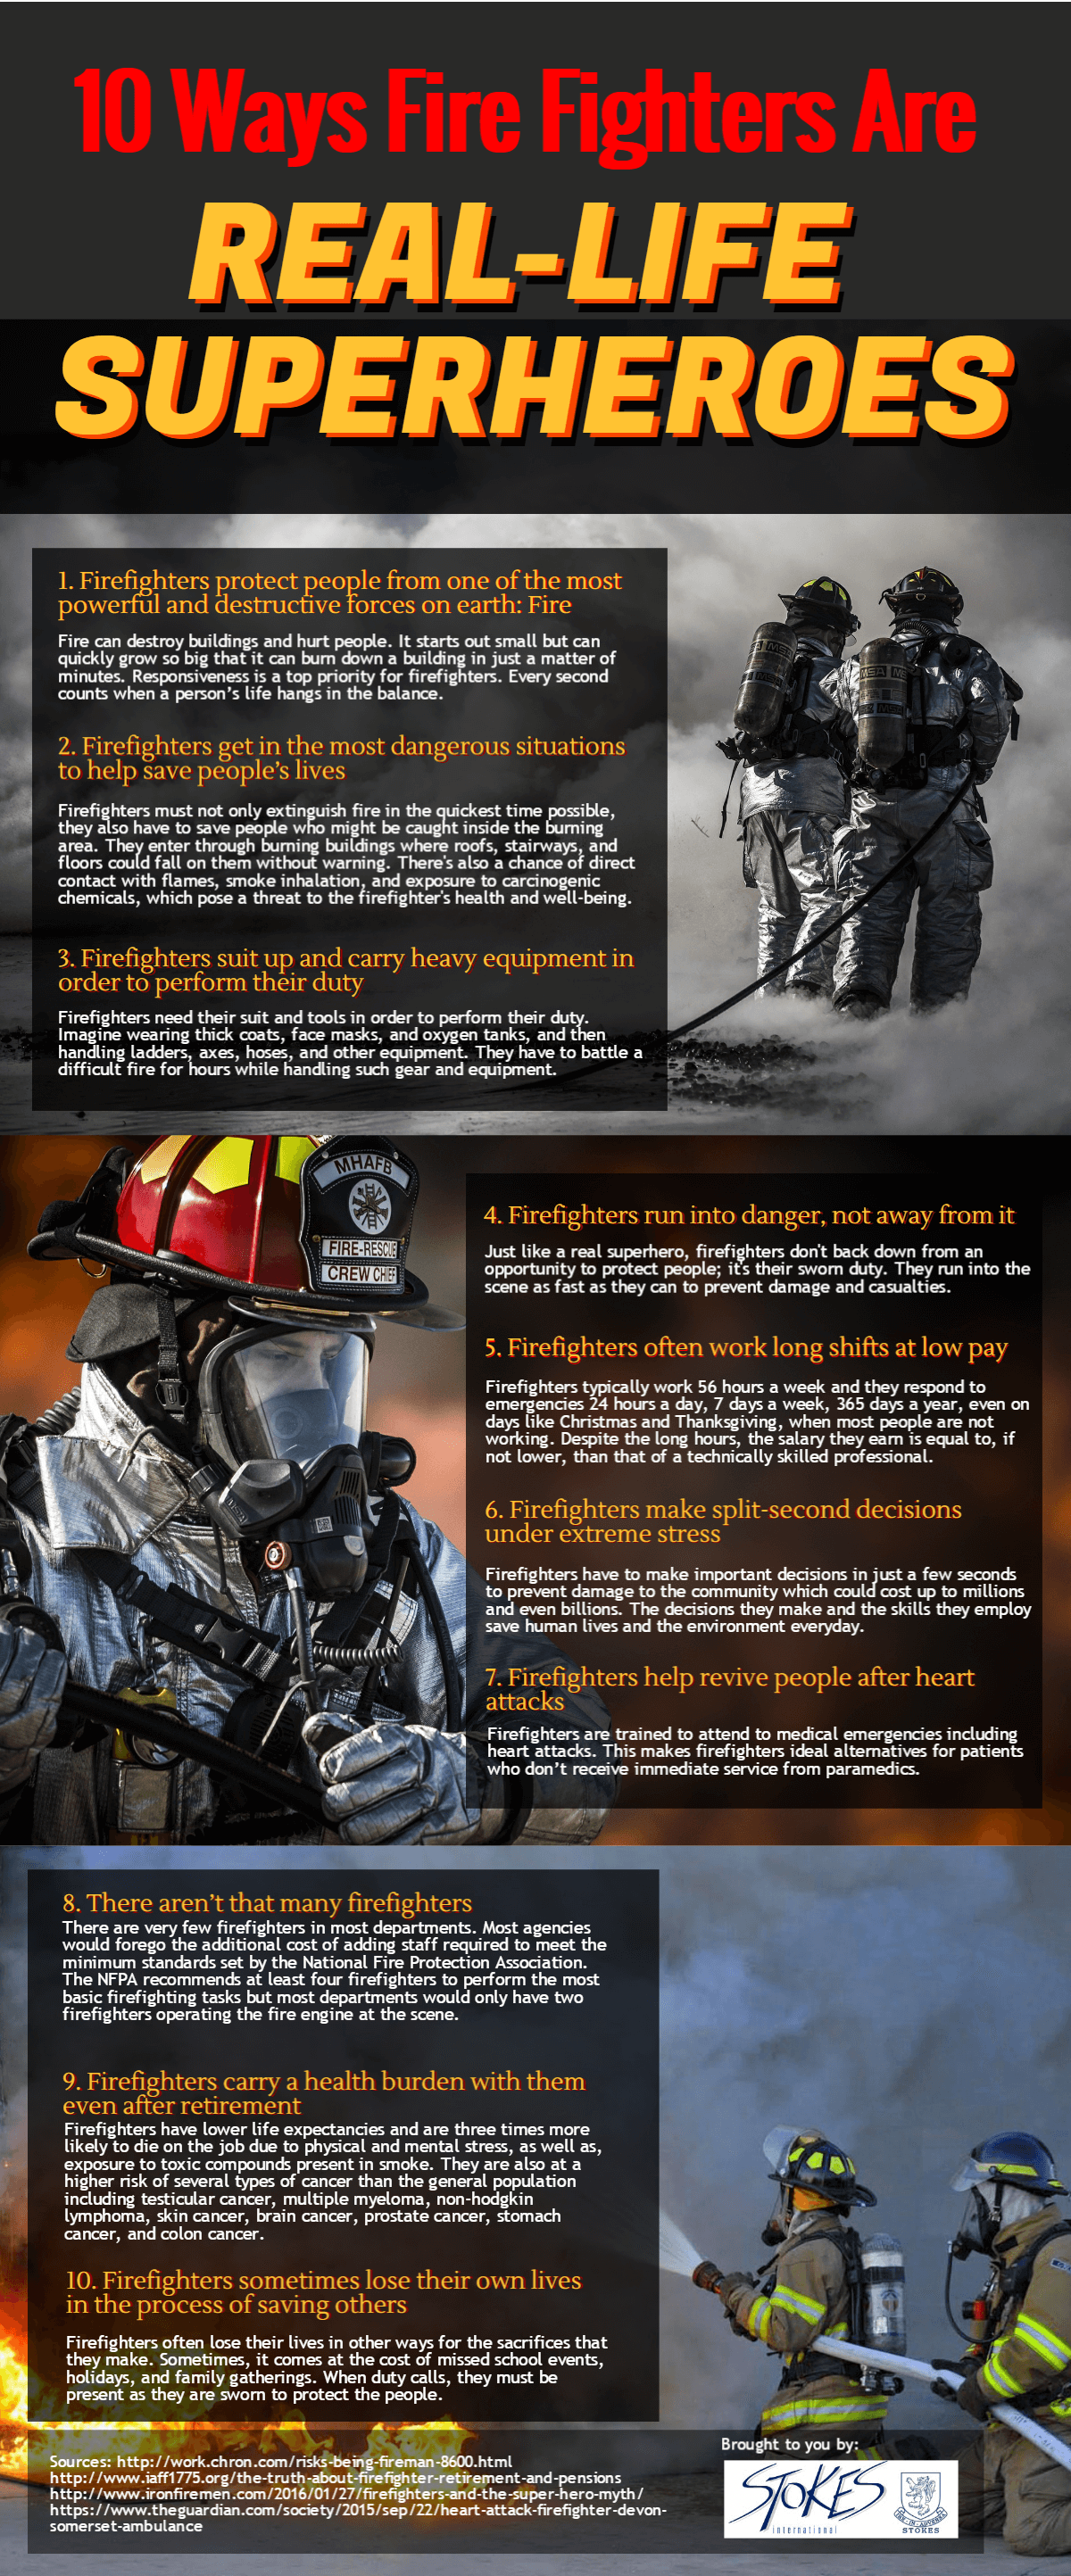 10_Ways_Fire_Fighters_are_Real_Superheroes_infographic